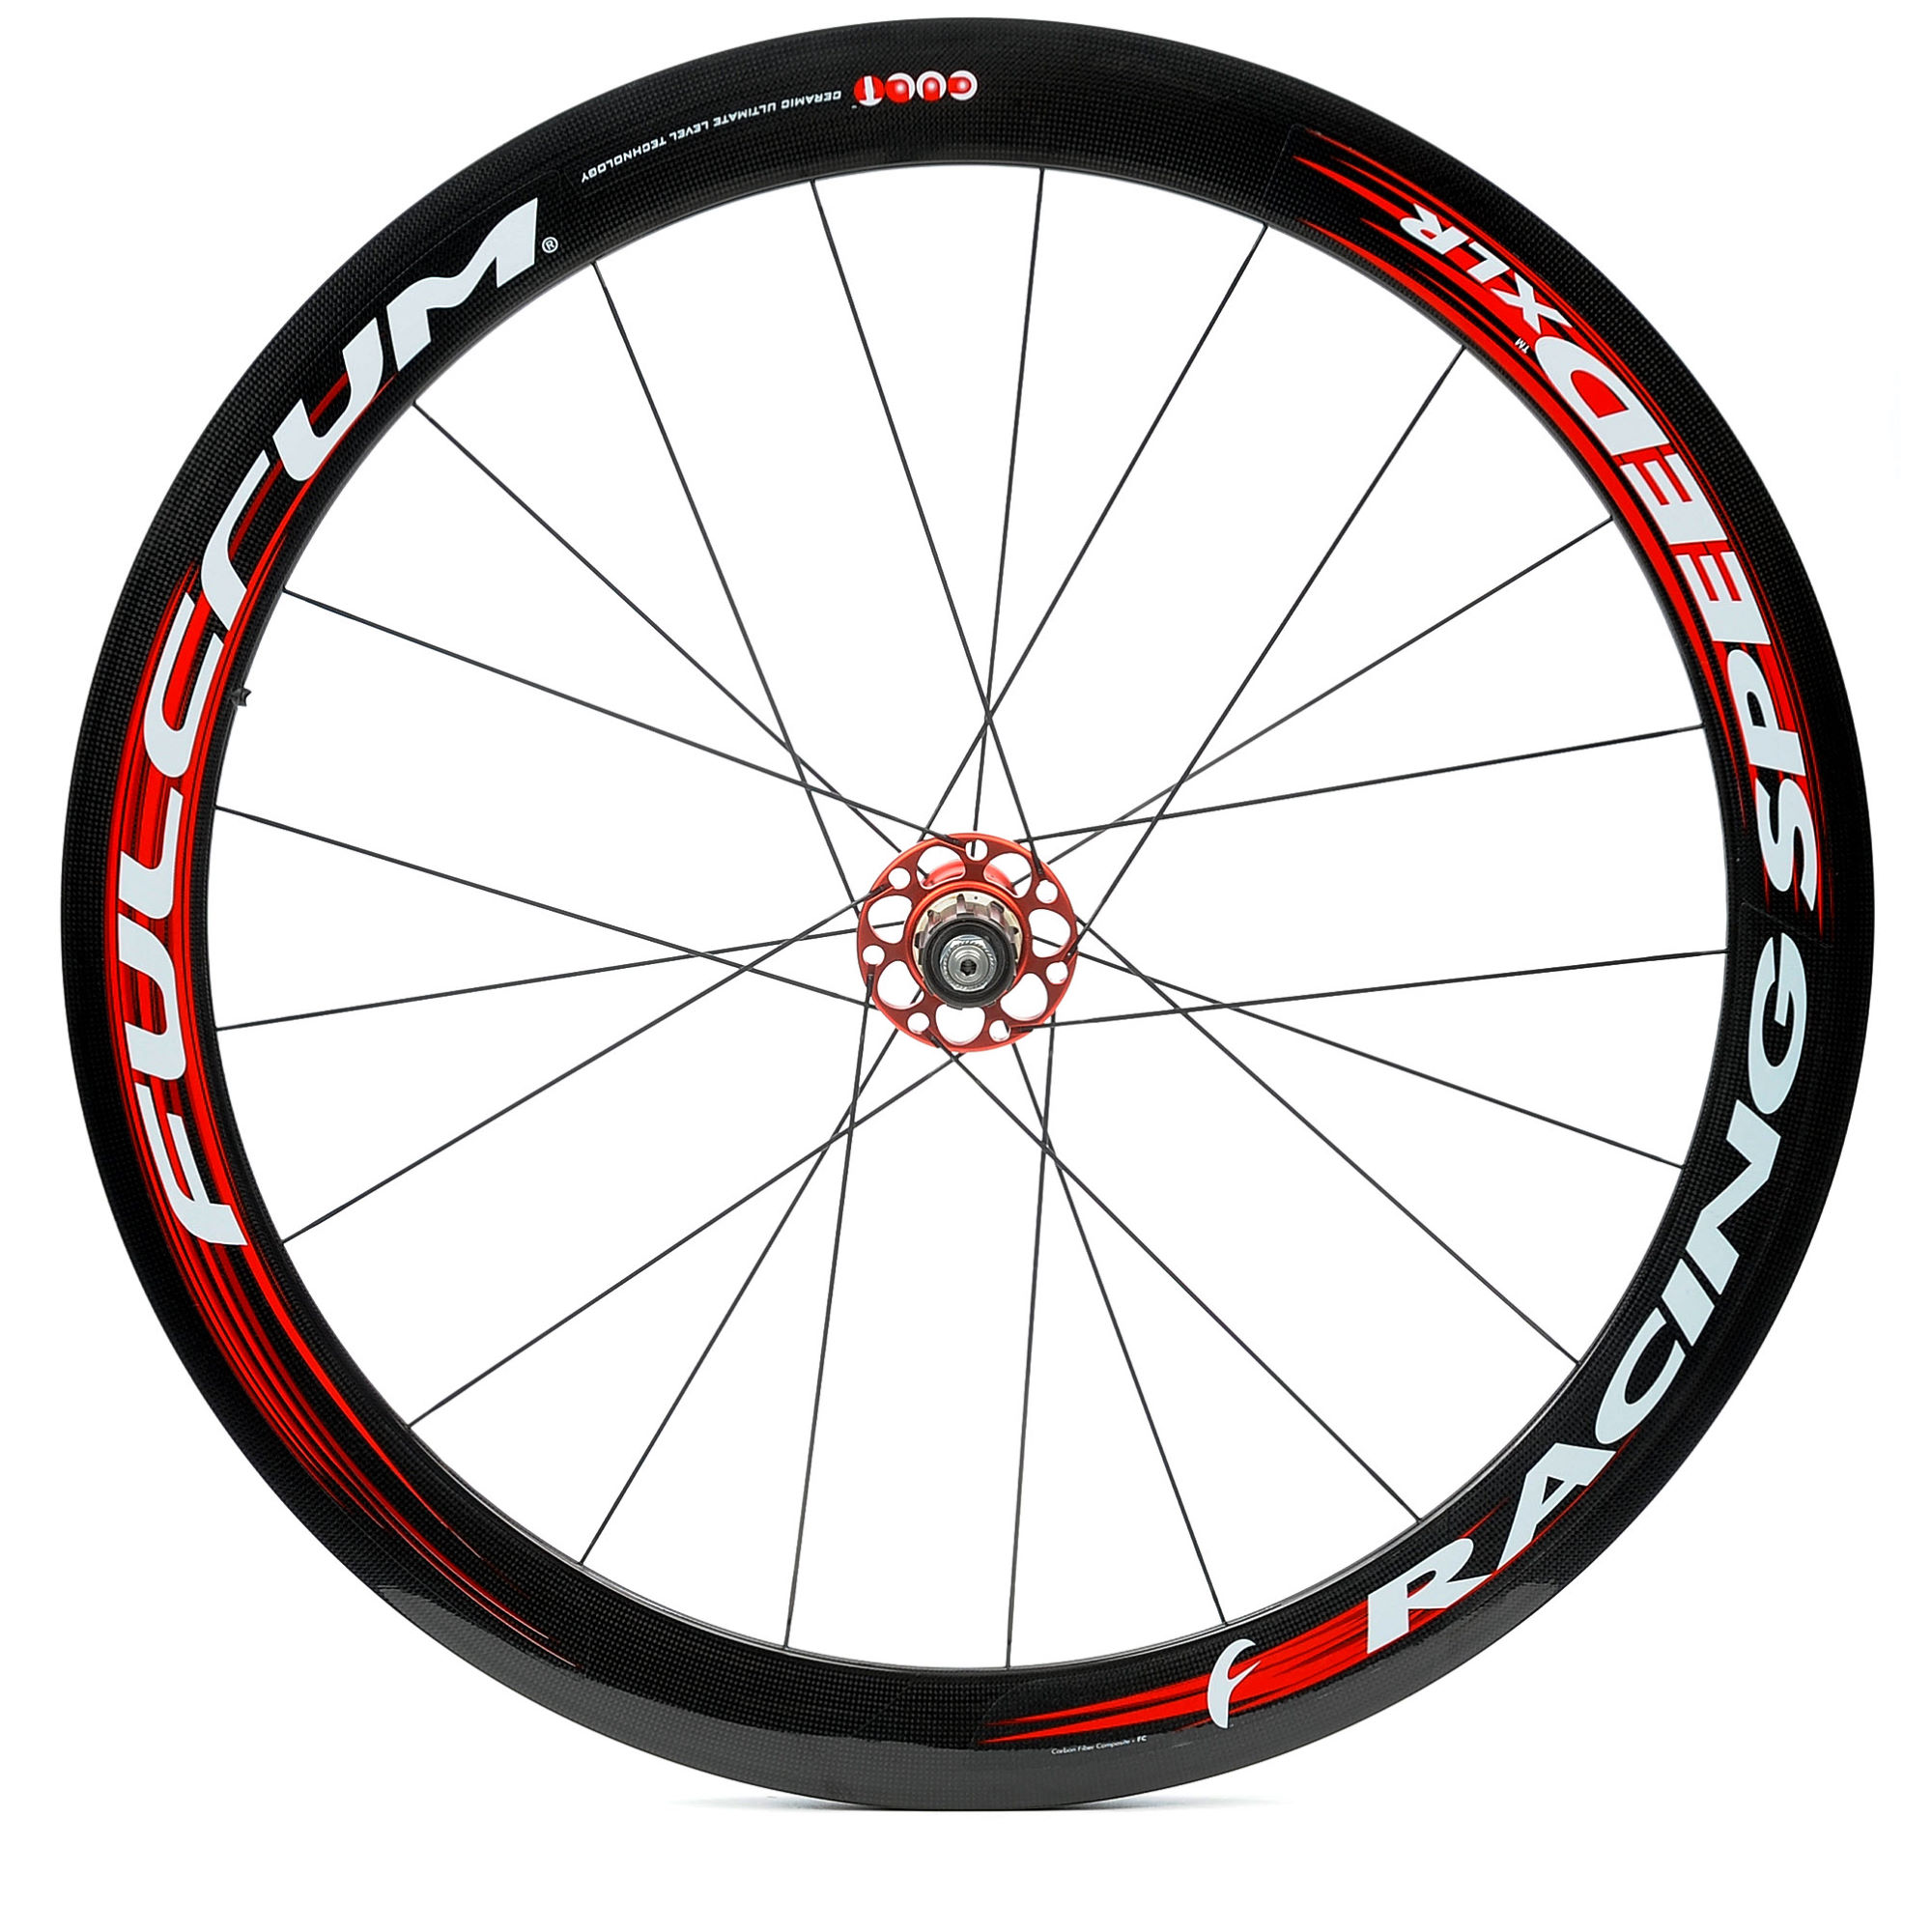 Wiggle Fulcrum Racing Speed Xlr Tubular Wheelset